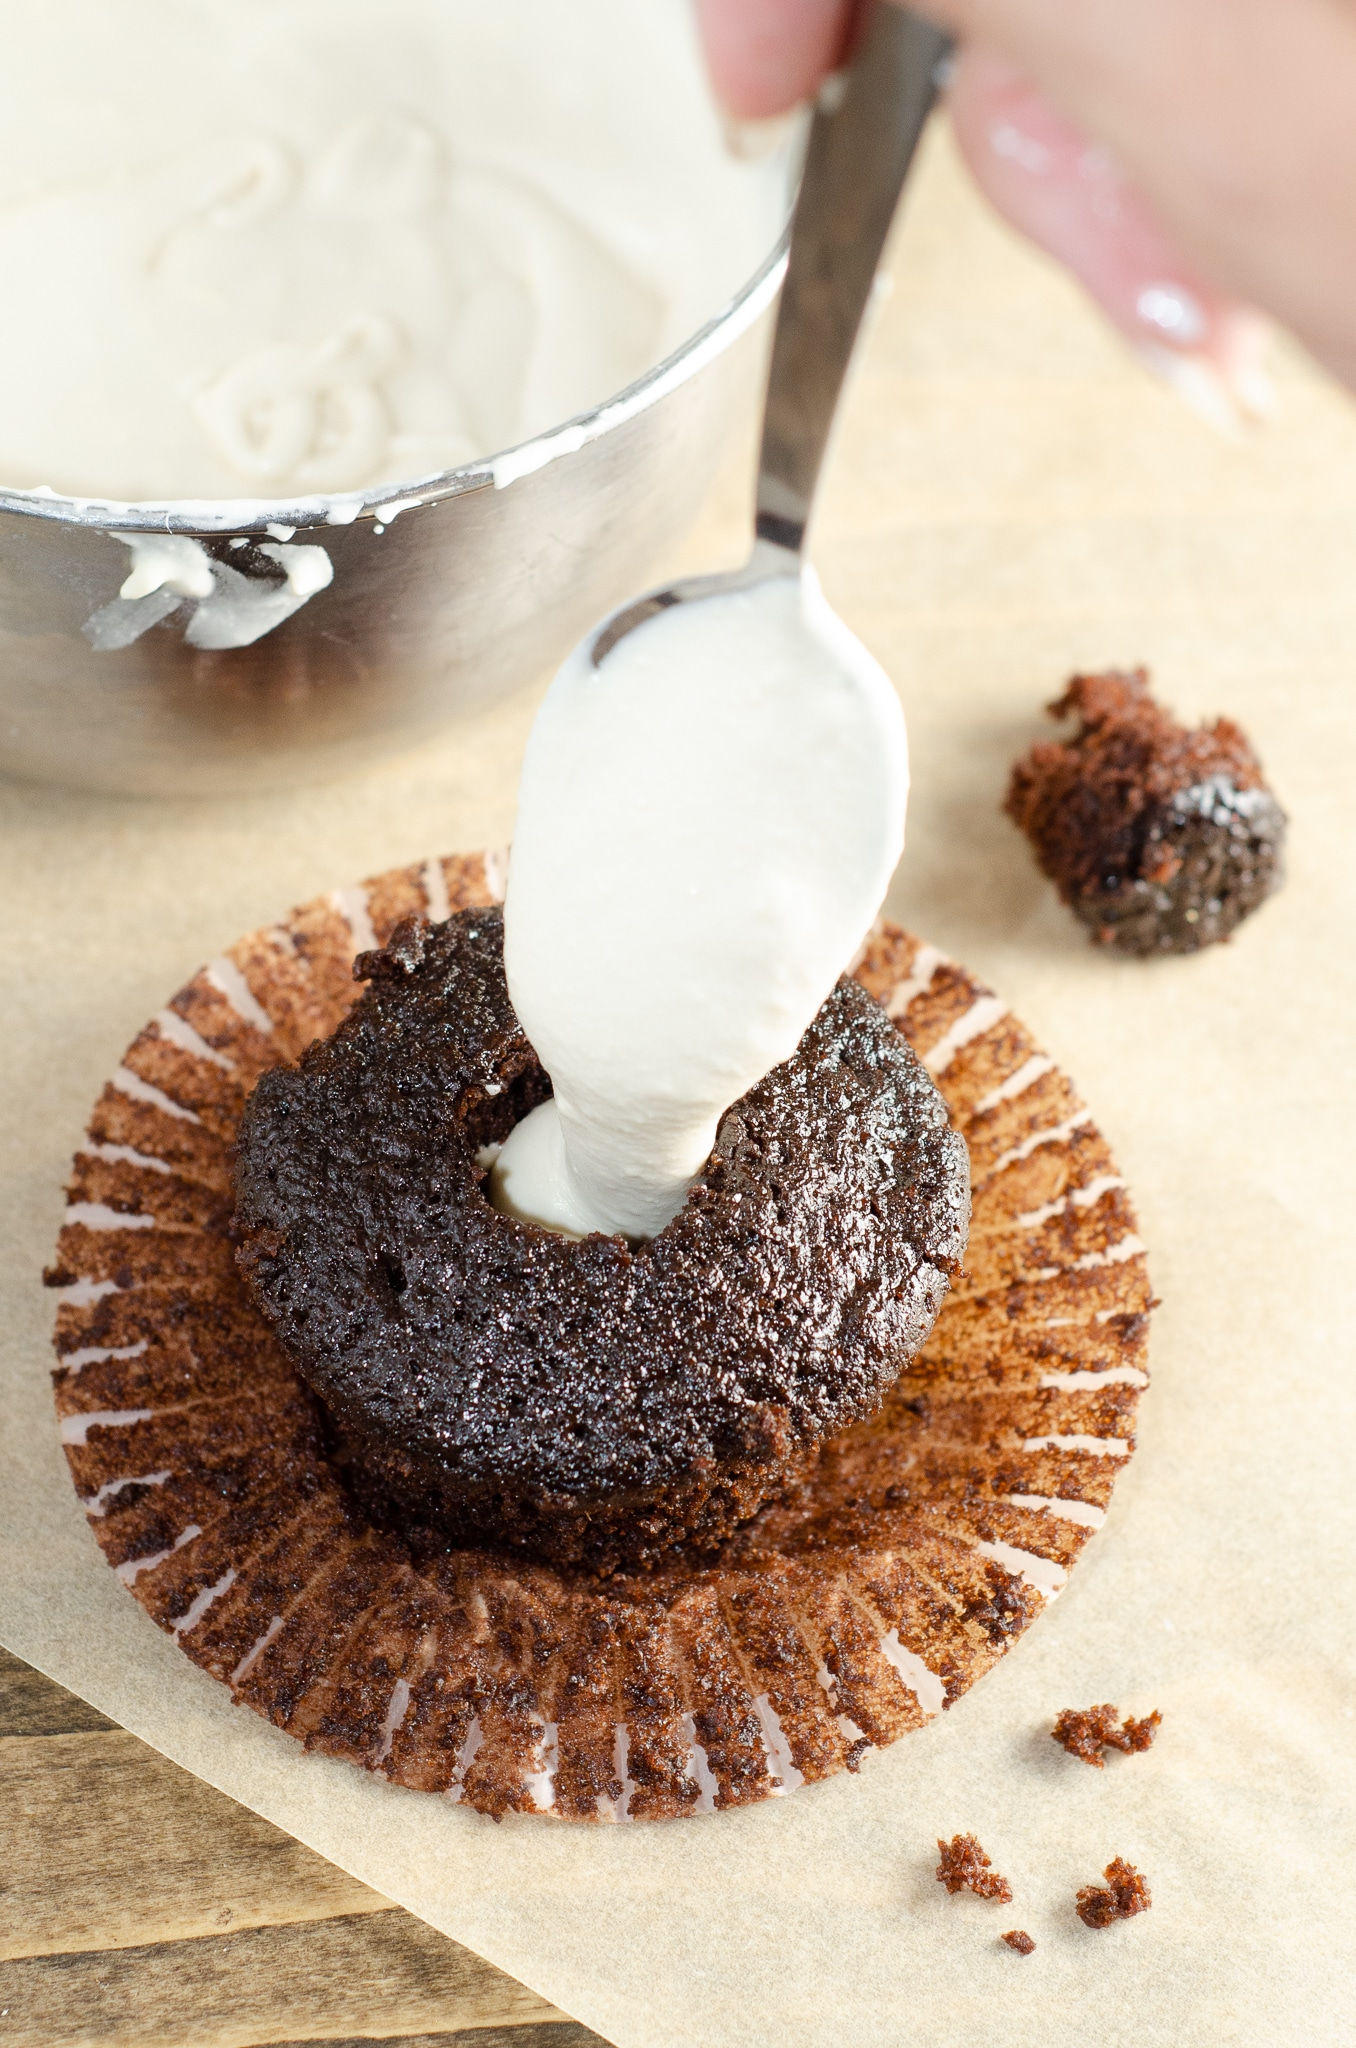 Chocolate Cupcake with Marshmallow Creme Filling. Sink your teeth into a childhood favorite cupcake that is as easy to bake as it is to eat. My Chocolate cupcakes with Chocolate Buttercream frosting and marshmallow creme filling will make the kid in you cheer.